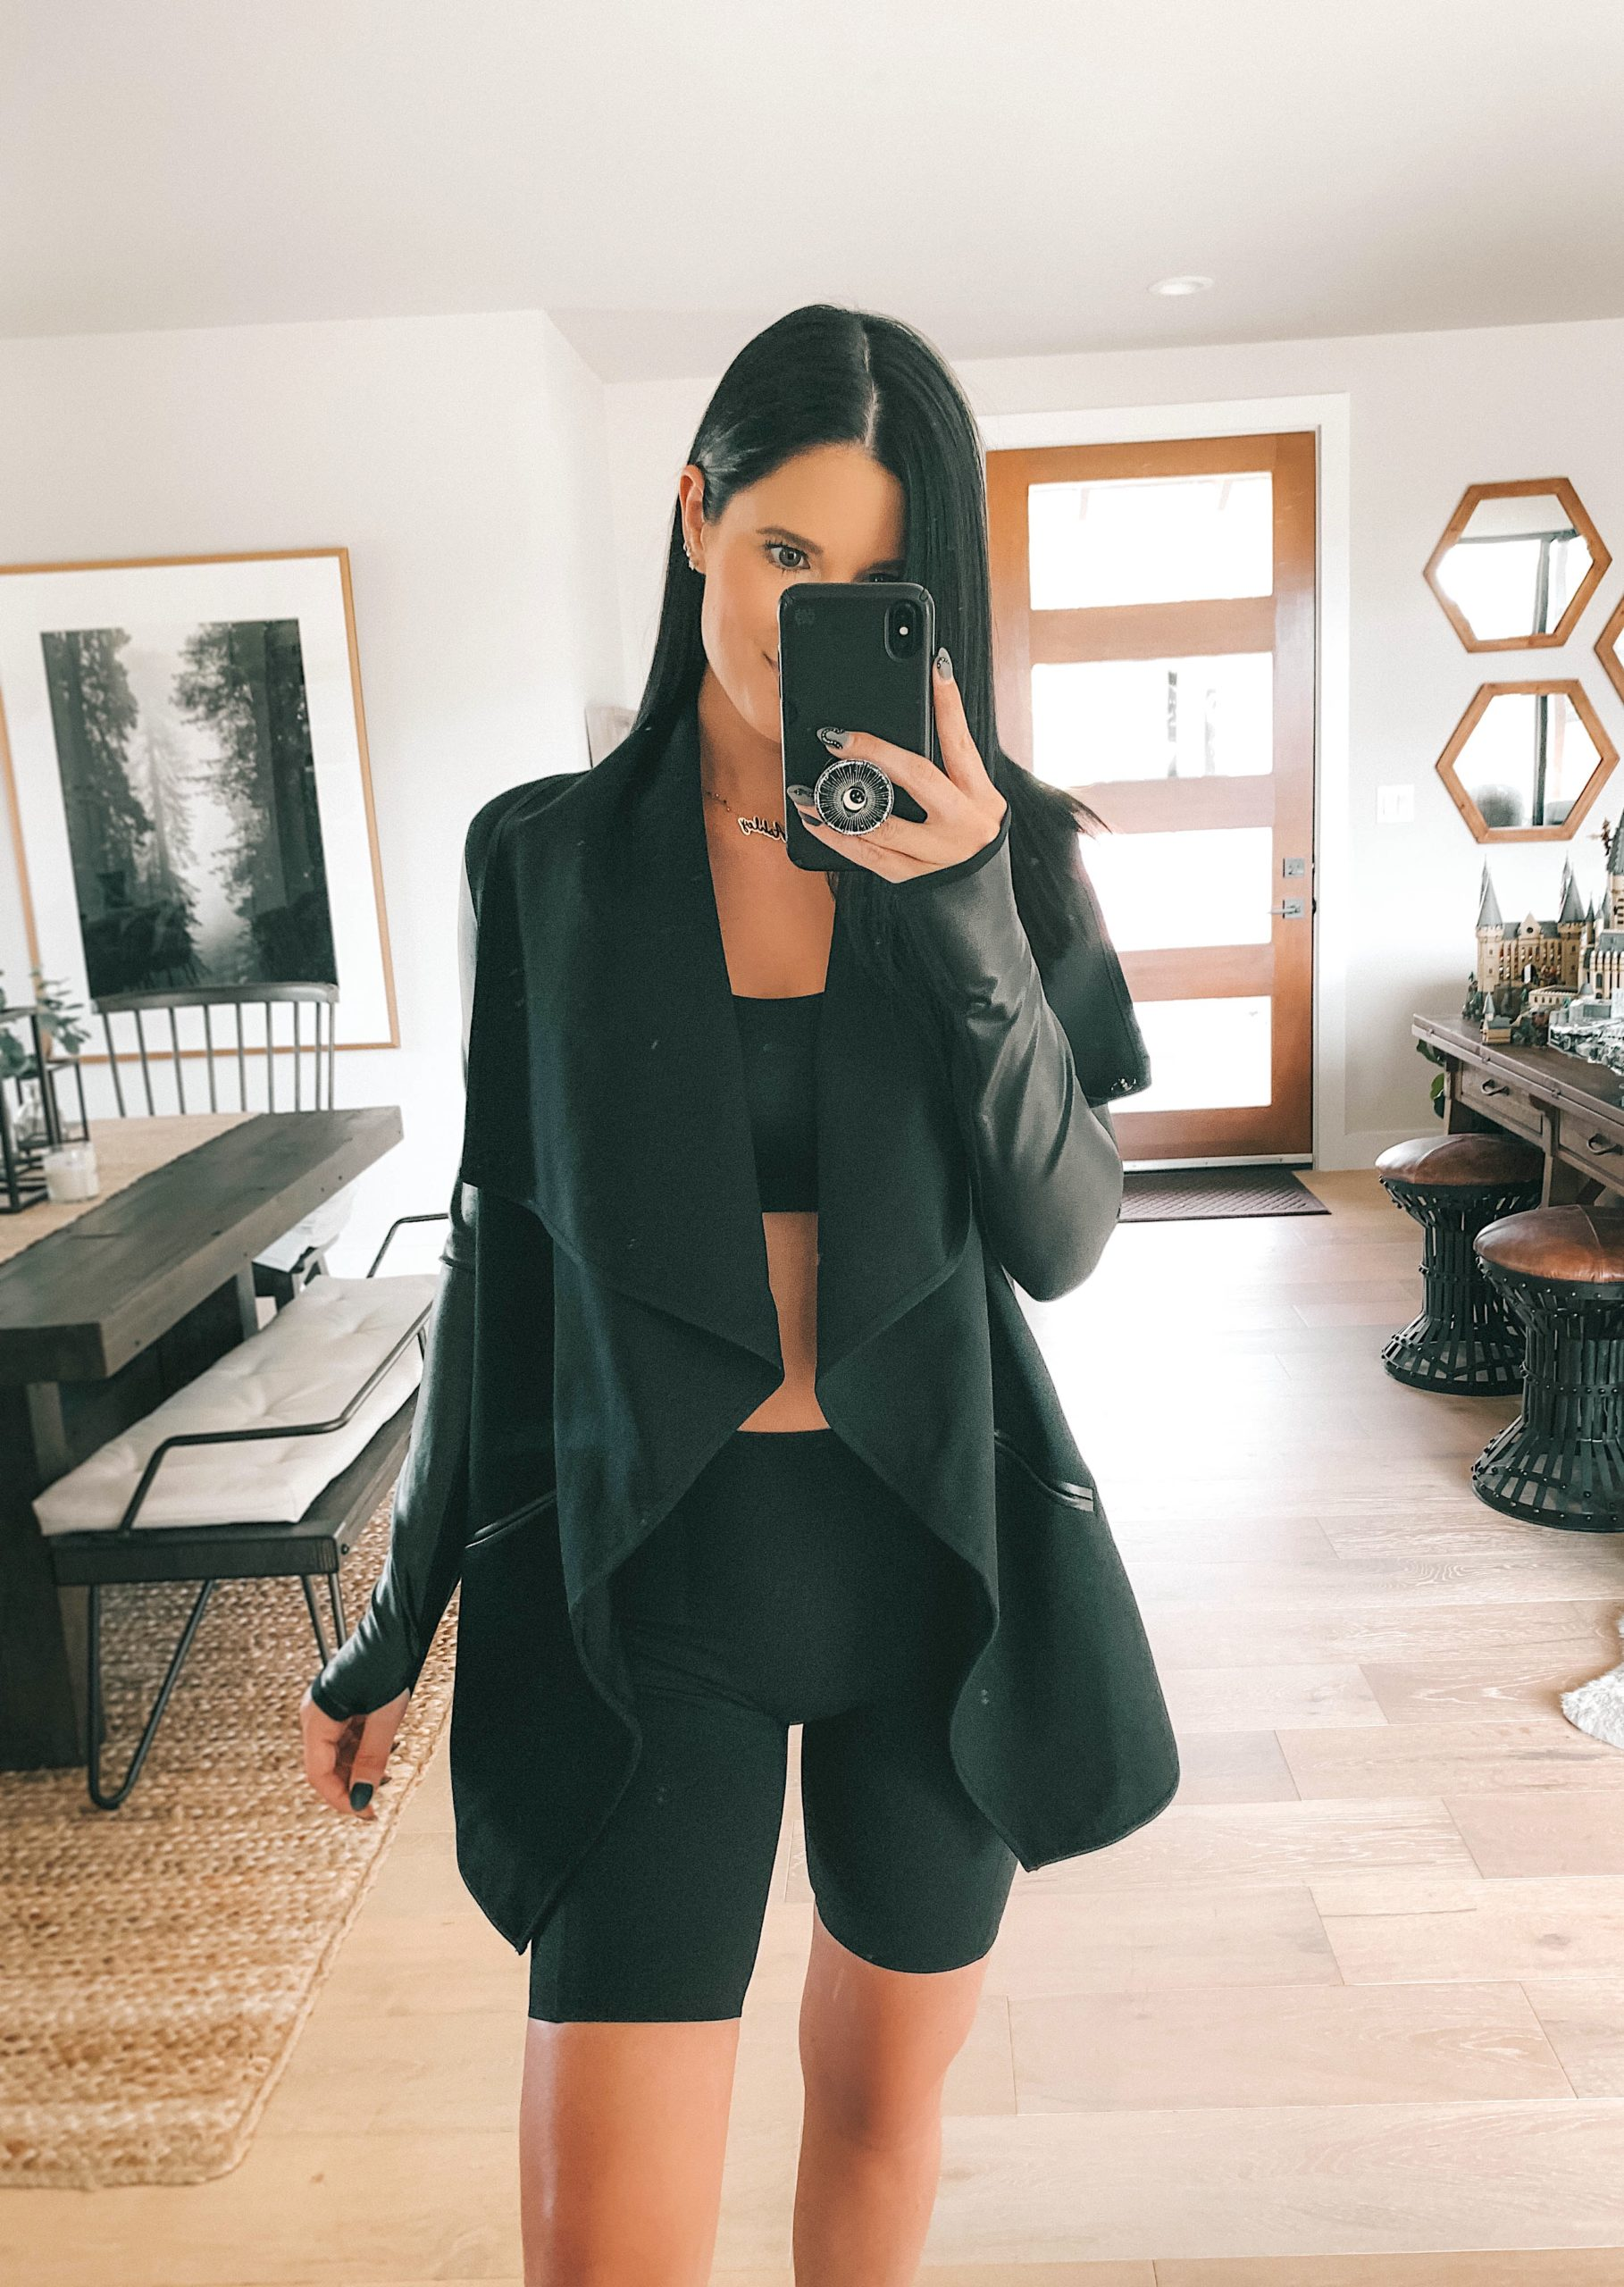 Nordstrom Anniversary Sale by popular Austin fashion blog, Dressed to Kill: image of a woman wearing a black cardigan with a black sports bra and black biker shorts.